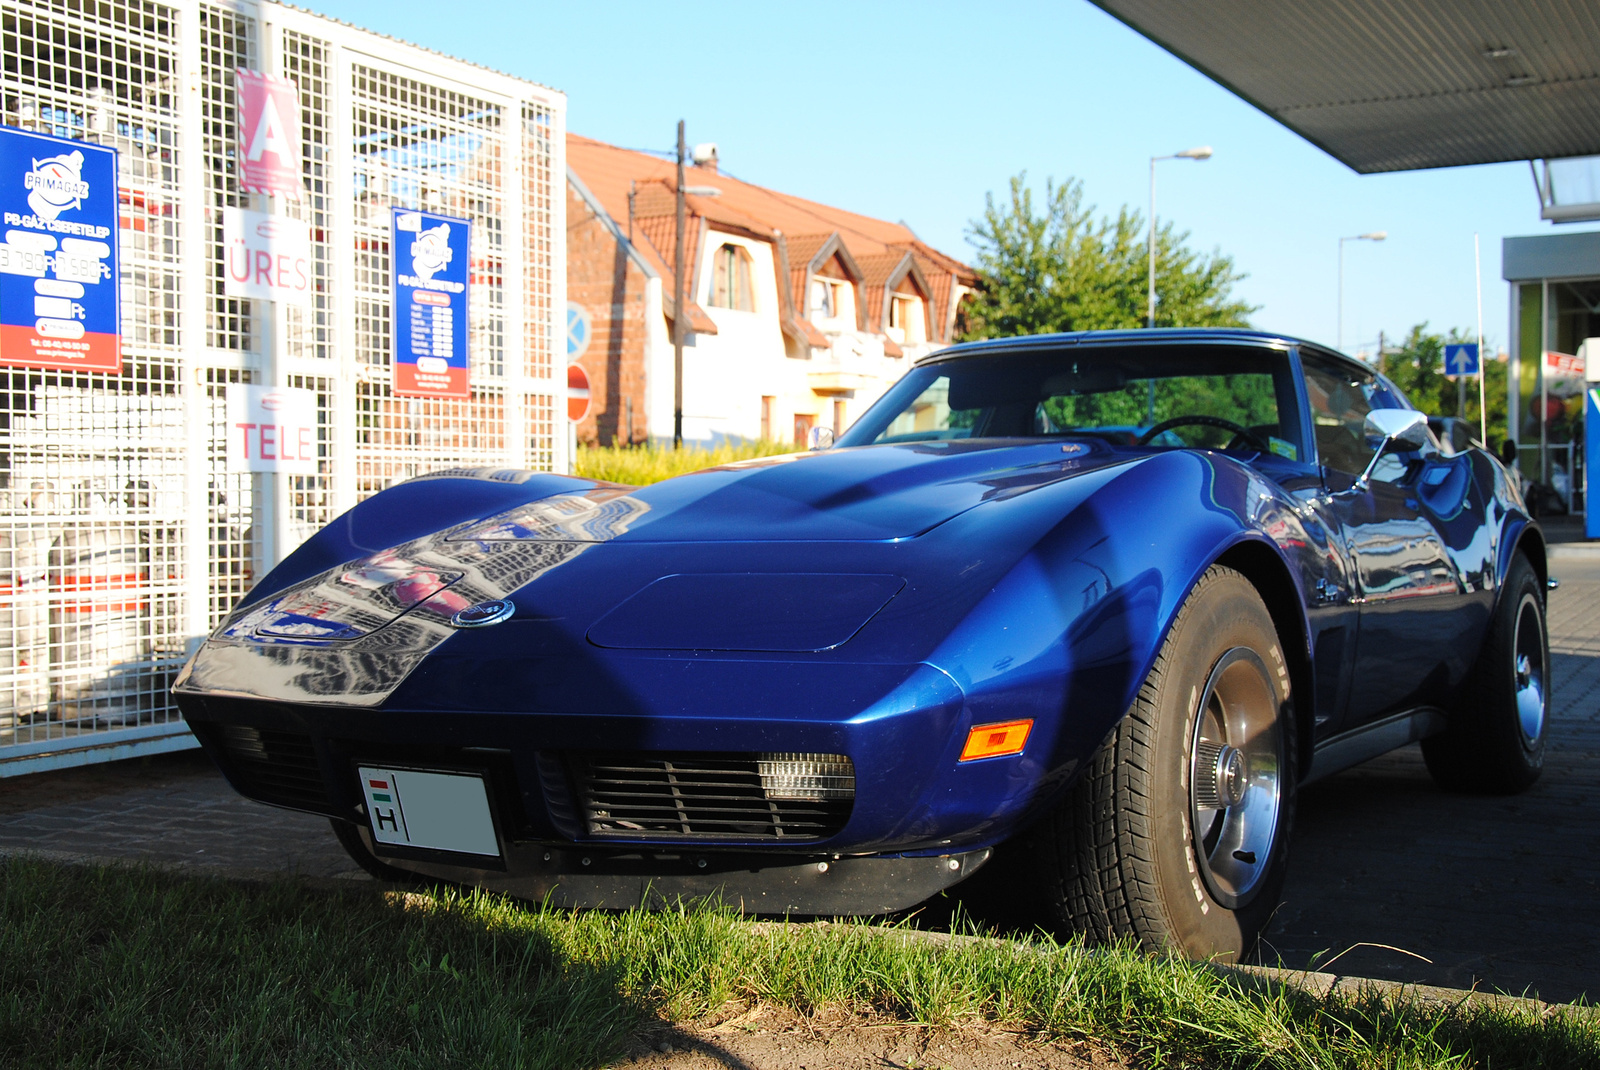 Chevrolet Corvette C3 Stingray